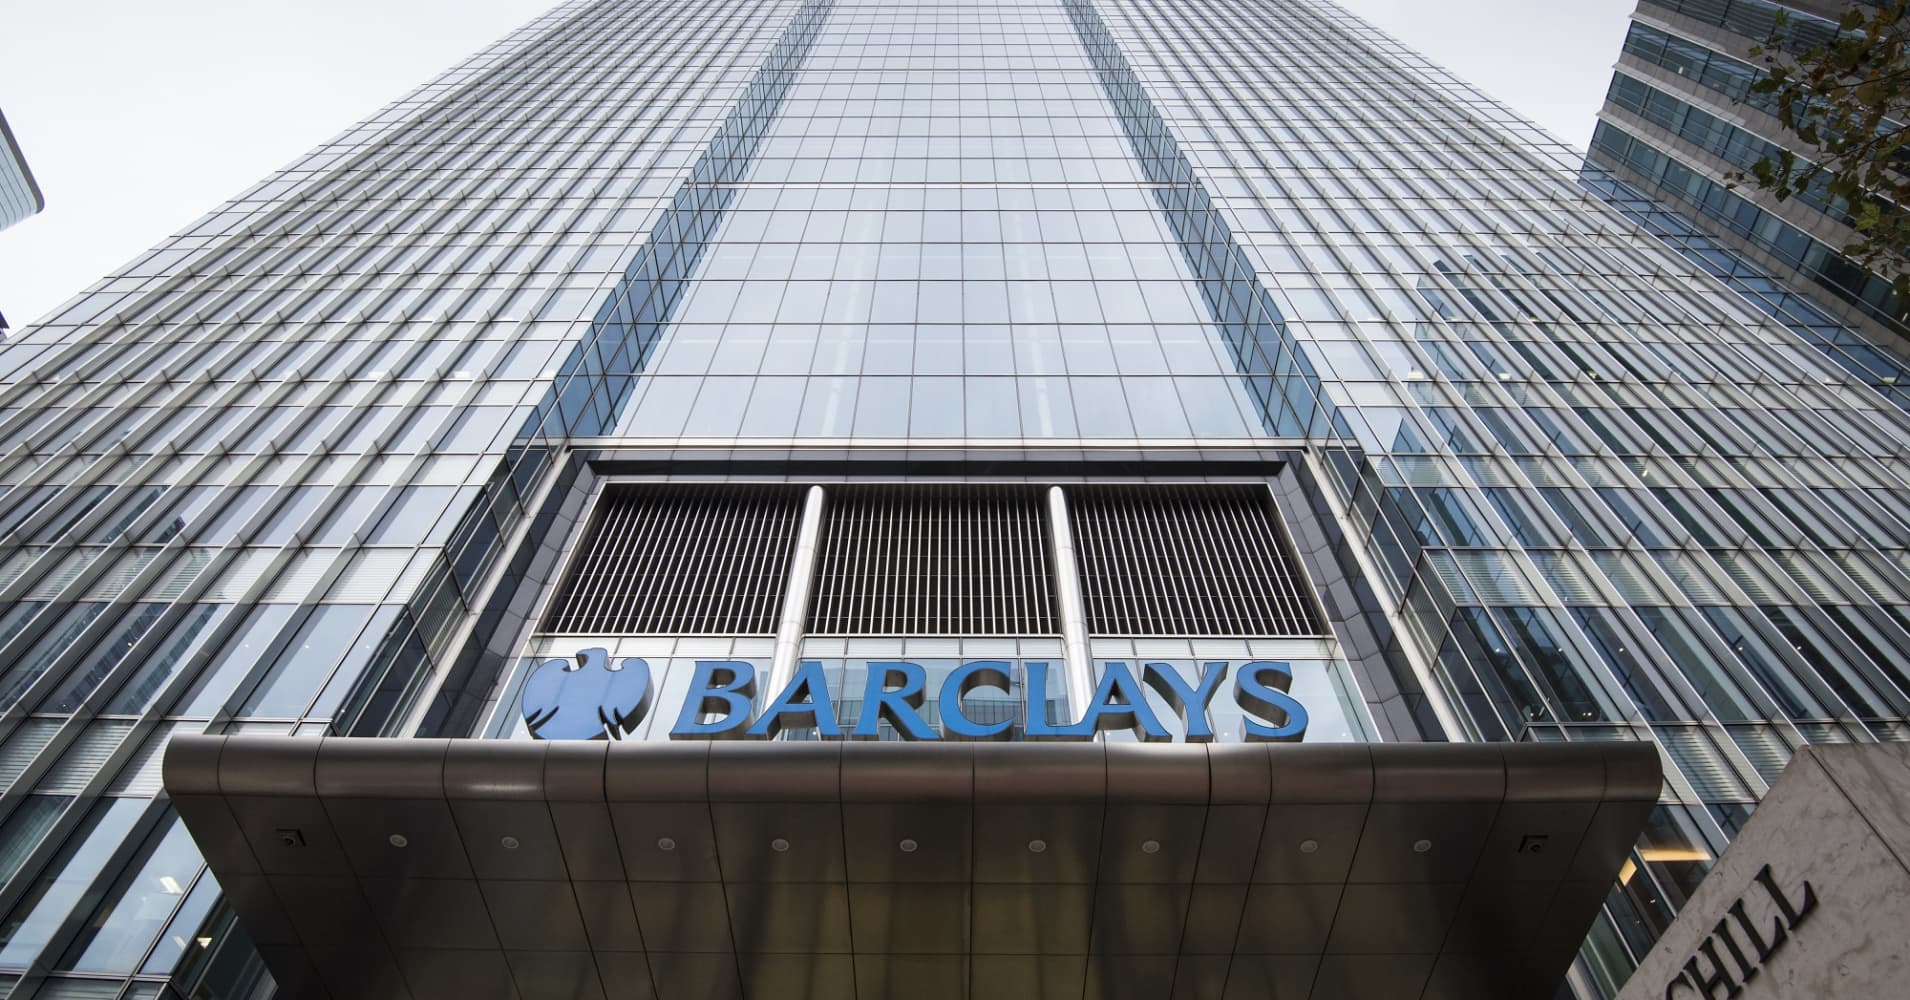 Barclays Quotes: Barclays Q1 2019 Earnings